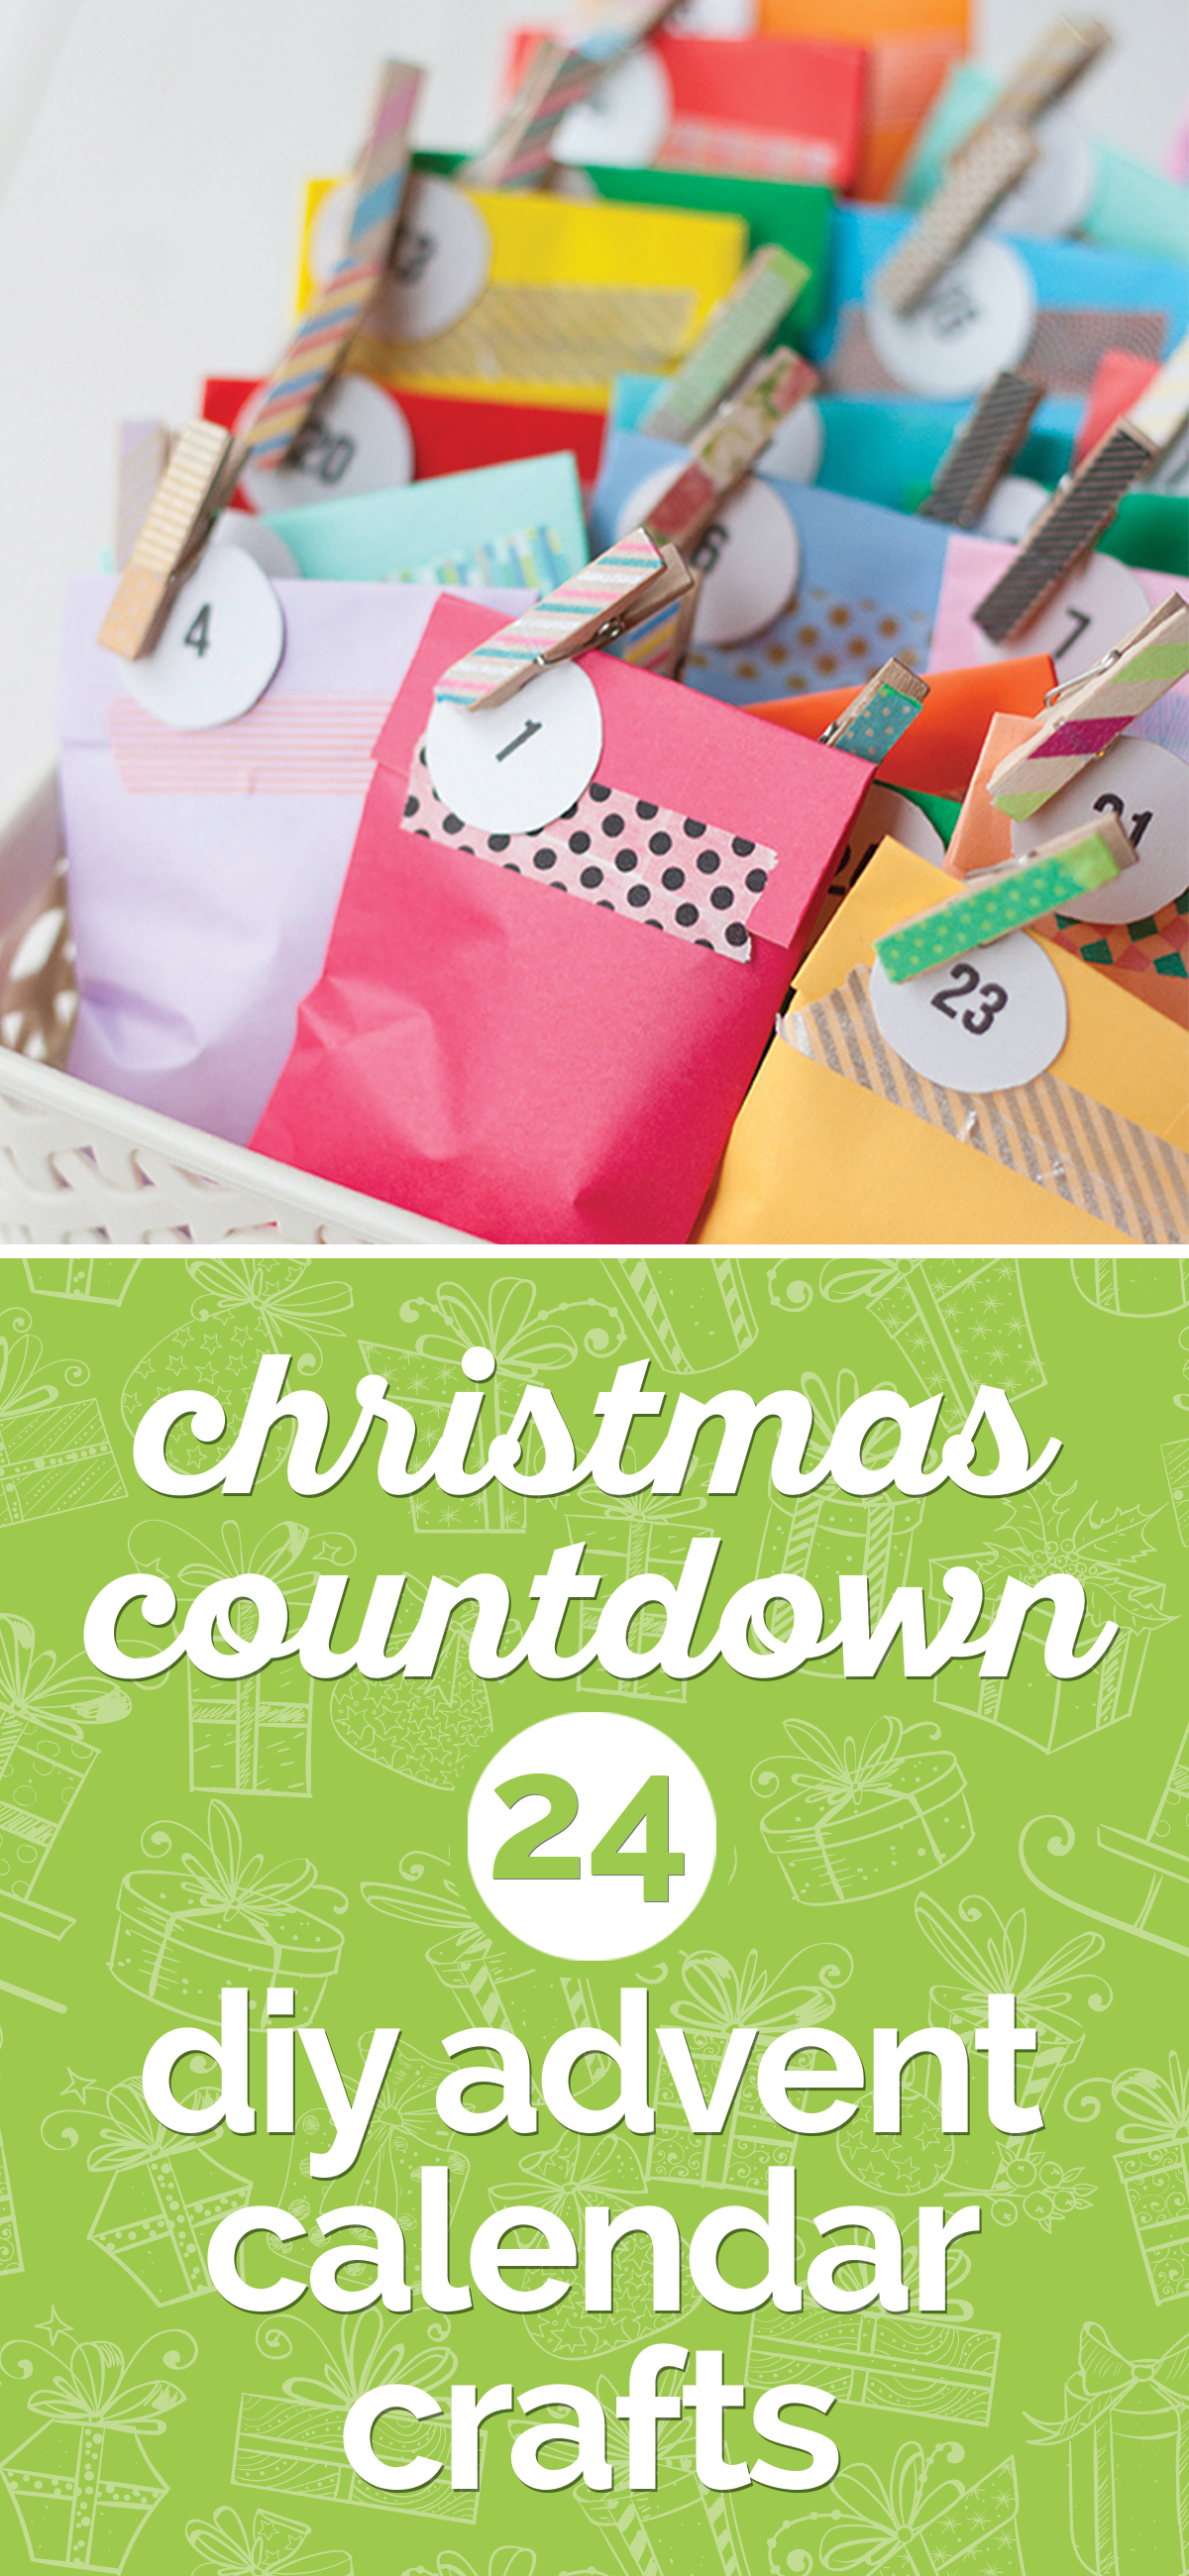 Christmas Countdown: 24 DIY Advent Calendar Crafts | thegoodstuff